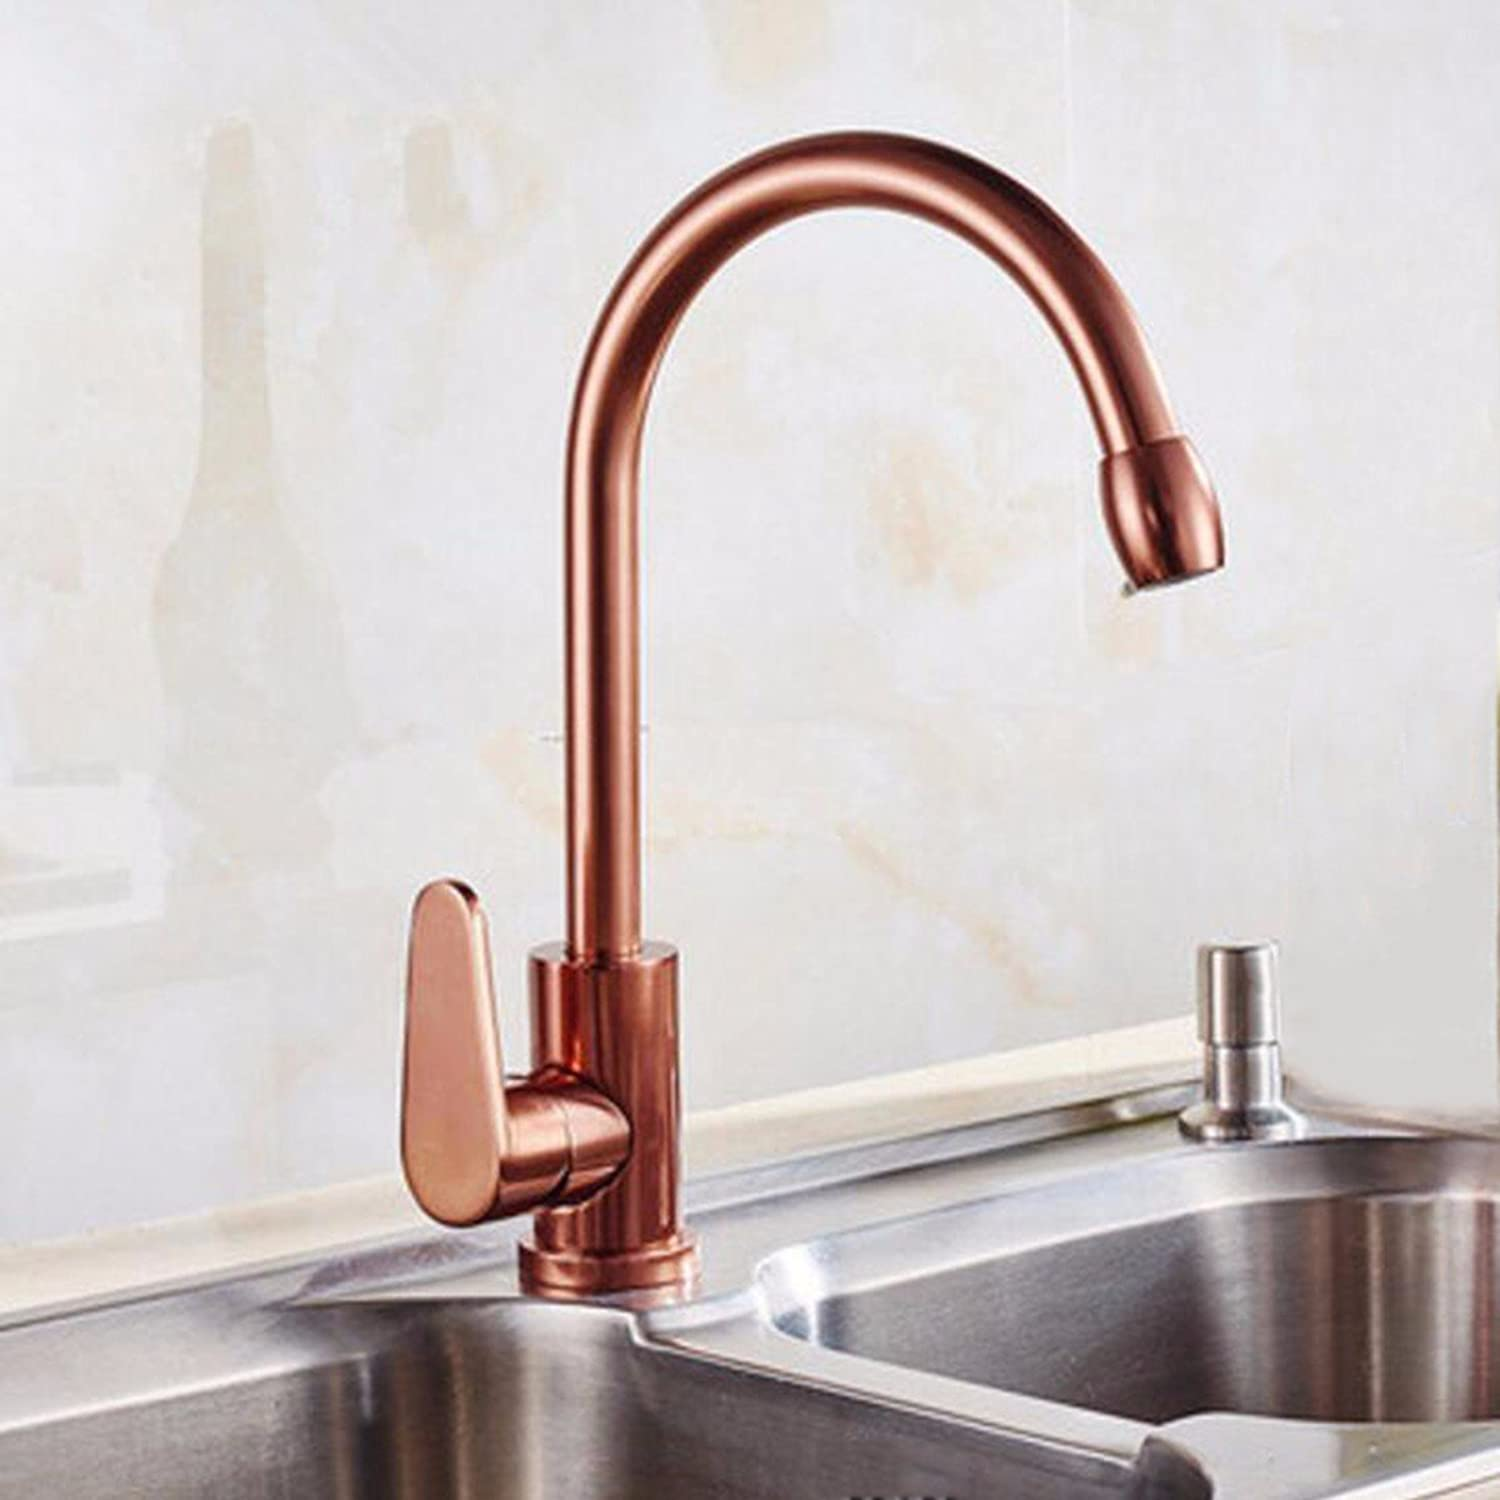 Kitchen faucet Cold And Hot Revolving Kitchen Faucet, Local Tyrant, golden Basin, Basin Head, Black gold, pink gold,B